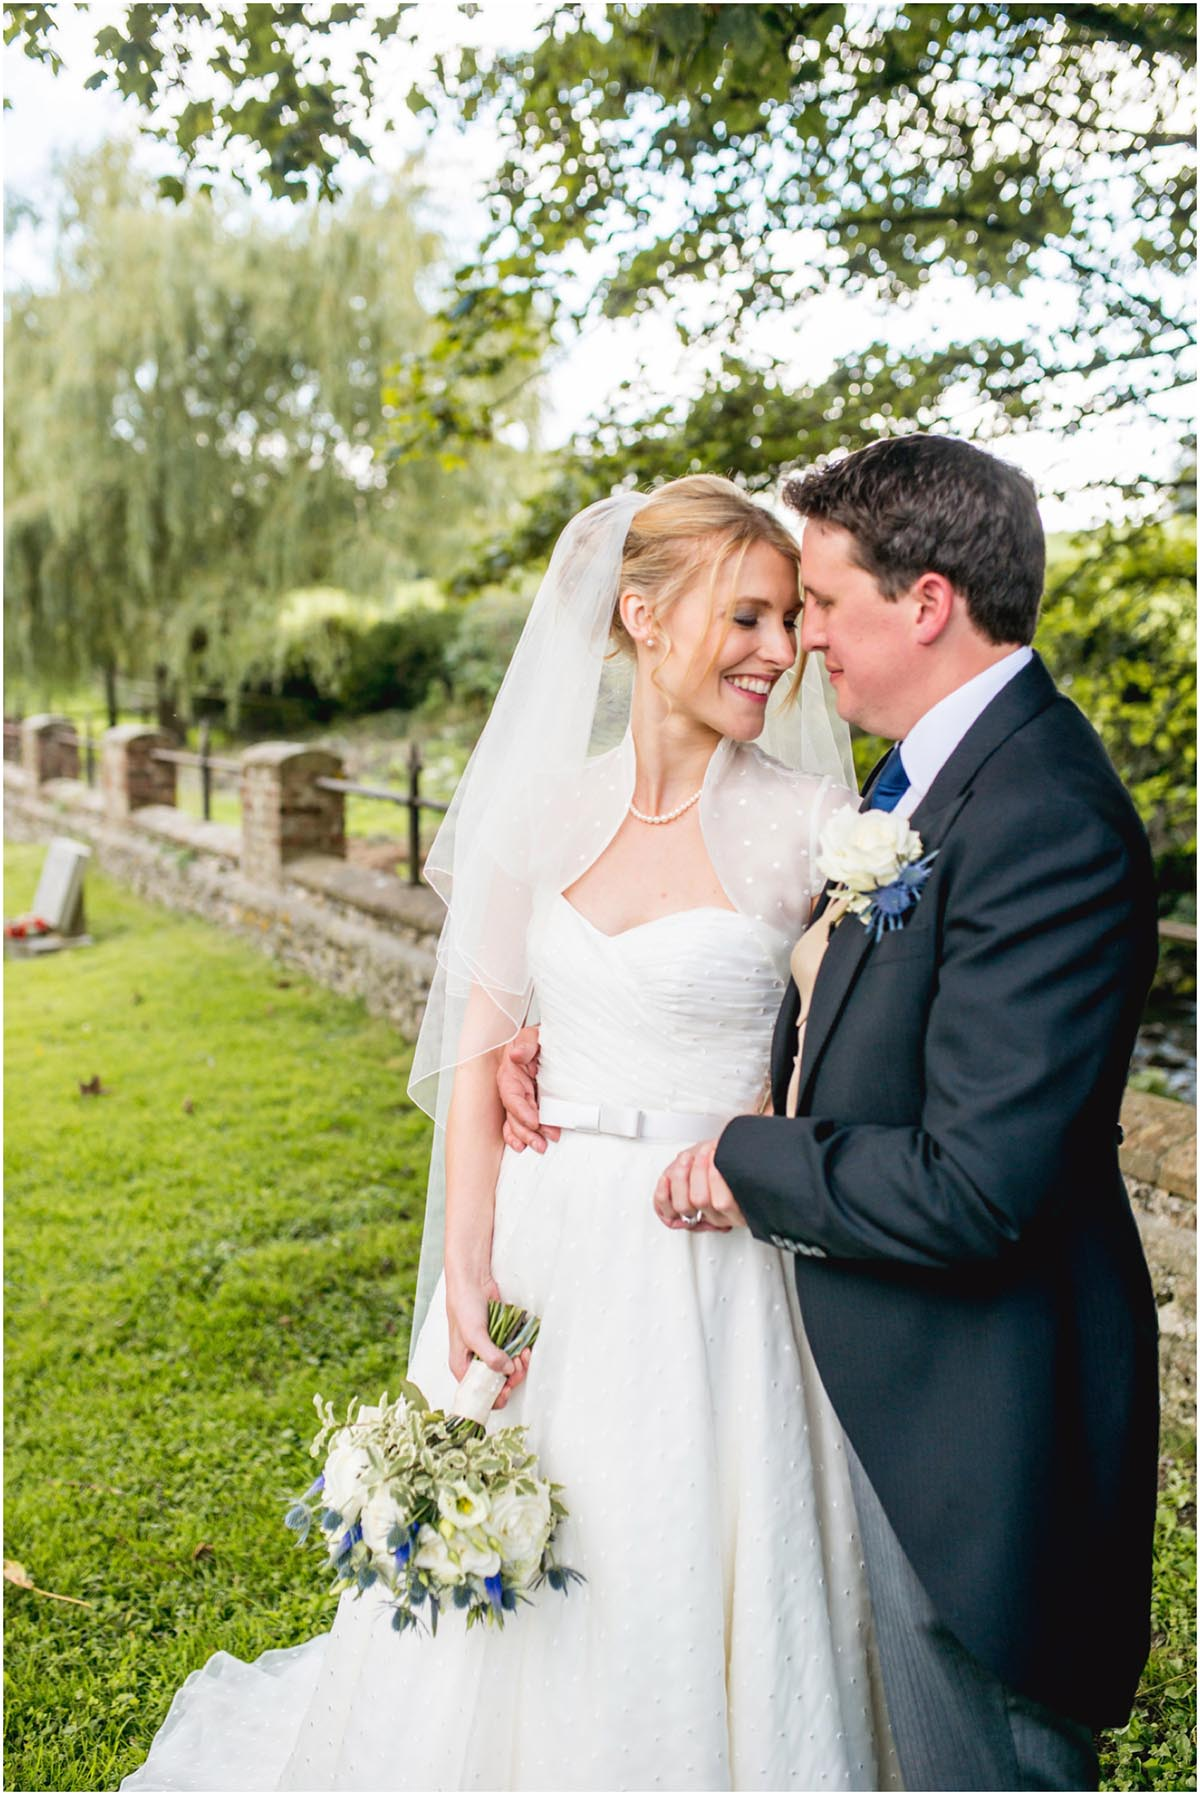 Susie and Ed's Dorset Wedding in Alton Pancras, Dorset, near Cerne Abbas, By Lisa Carpenter Photography, West Midlands, Birmingham based photographer